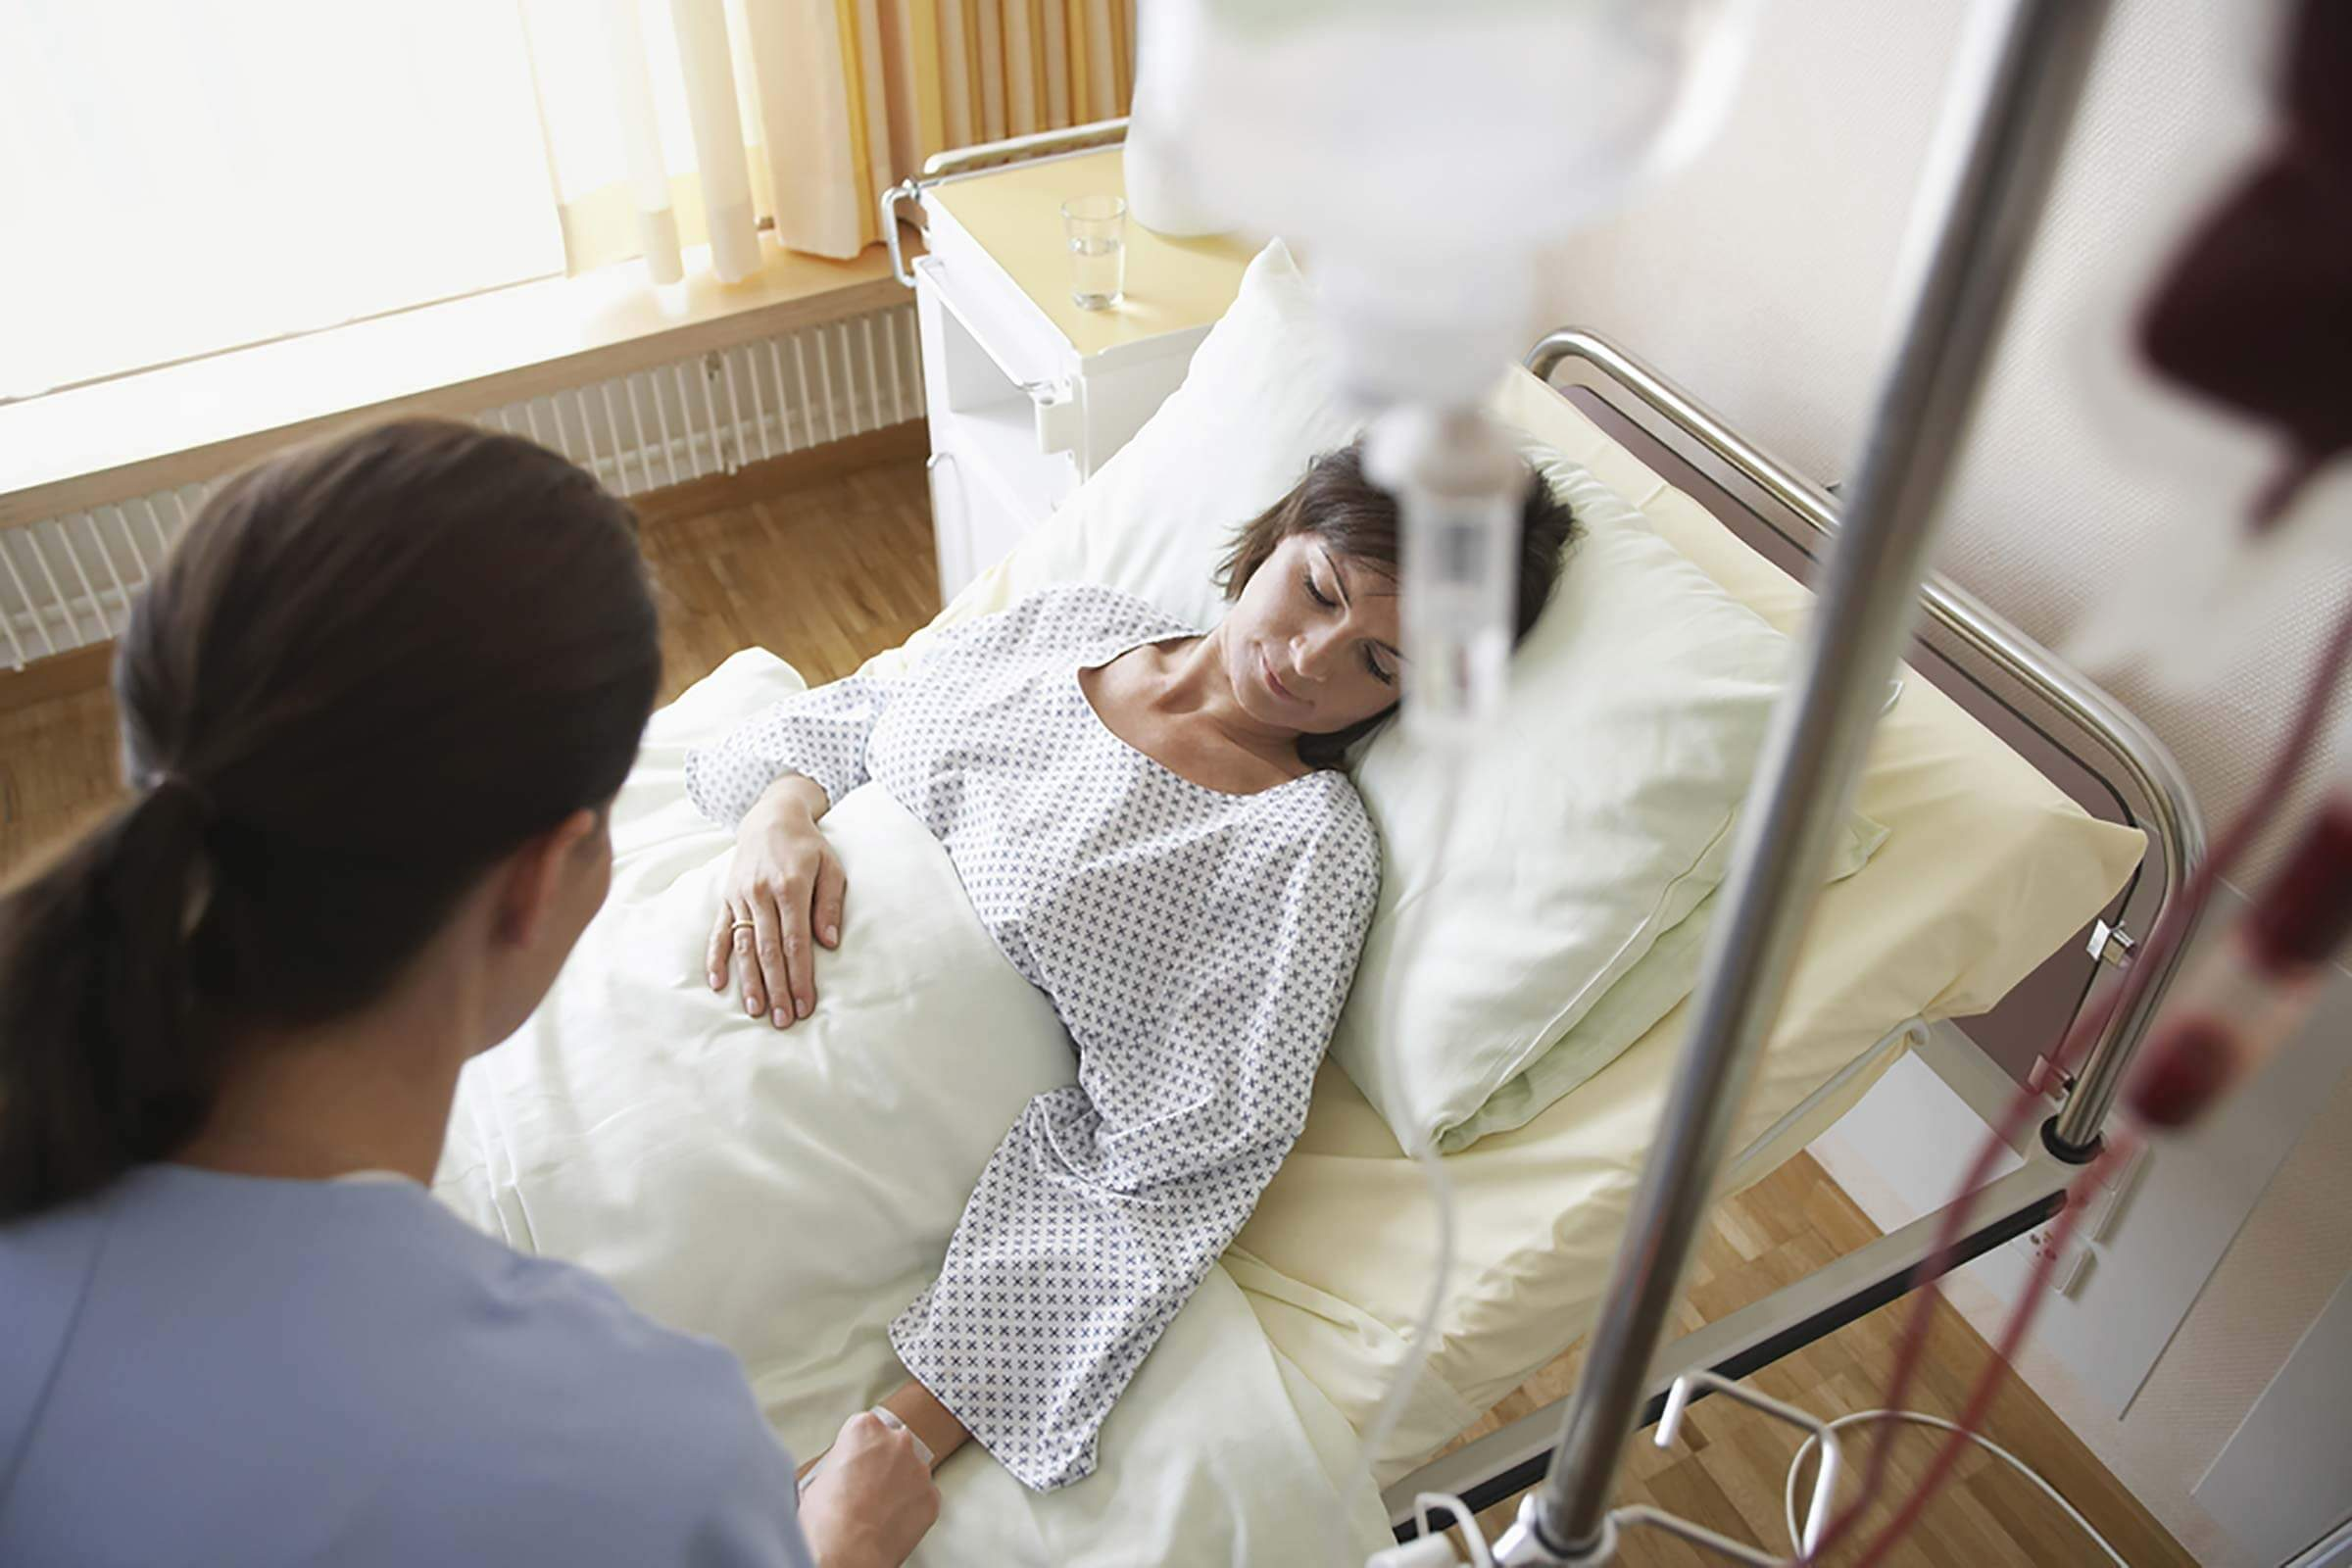 Woman lying in a hospital bed with an IV drip.